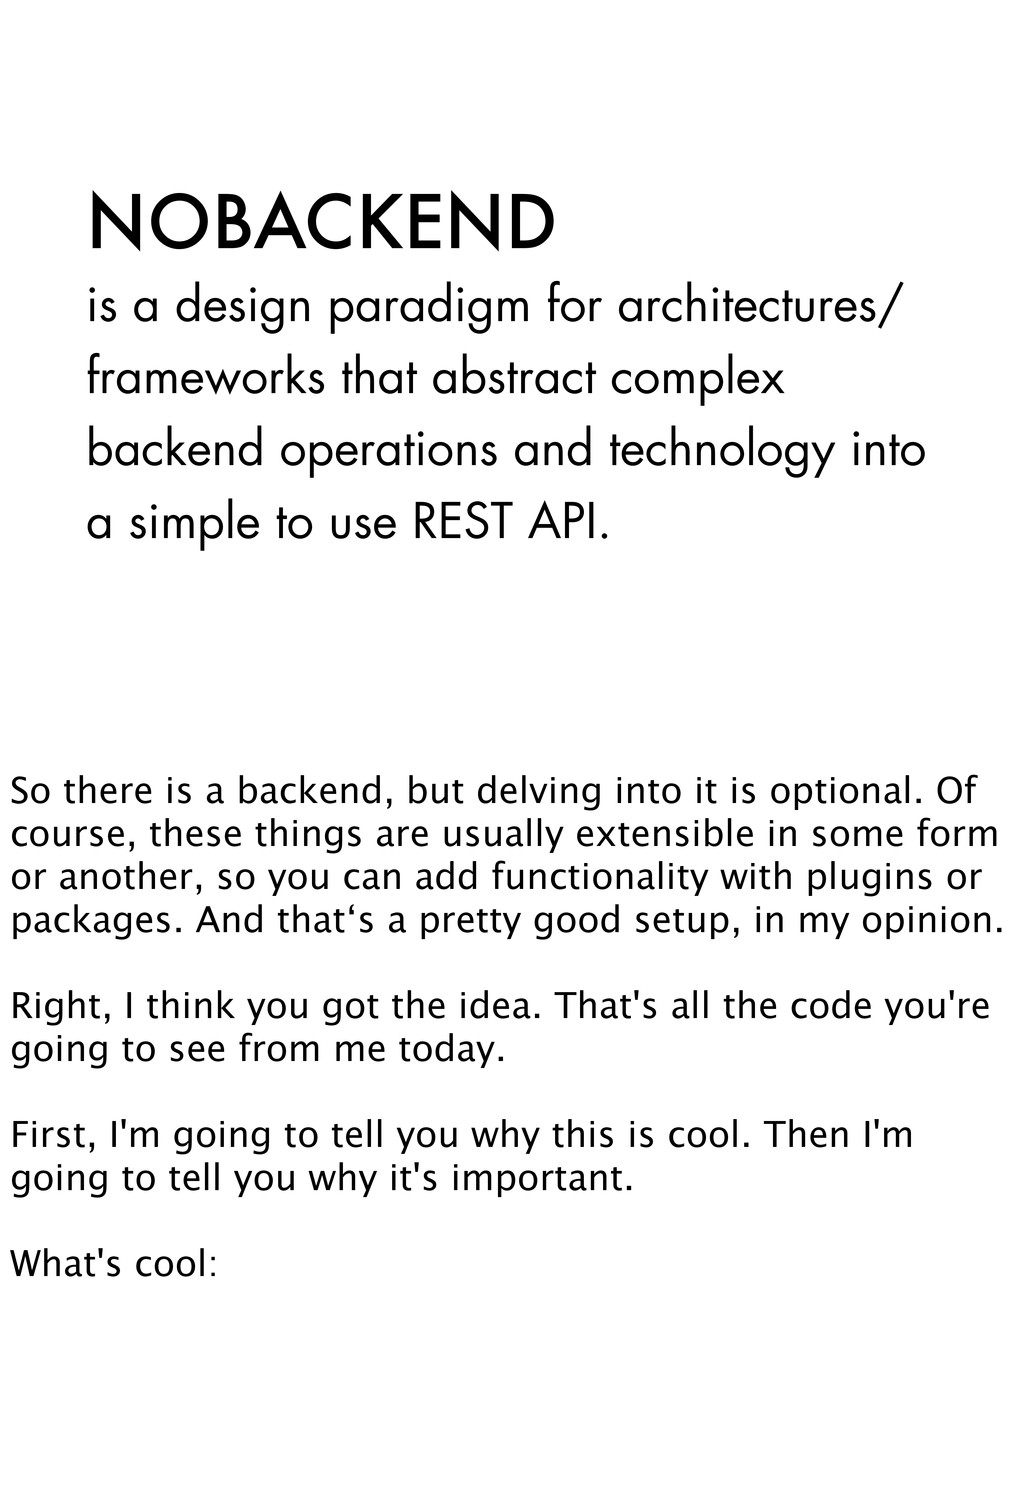 NOBACKEND is a design paradigm for architecture...